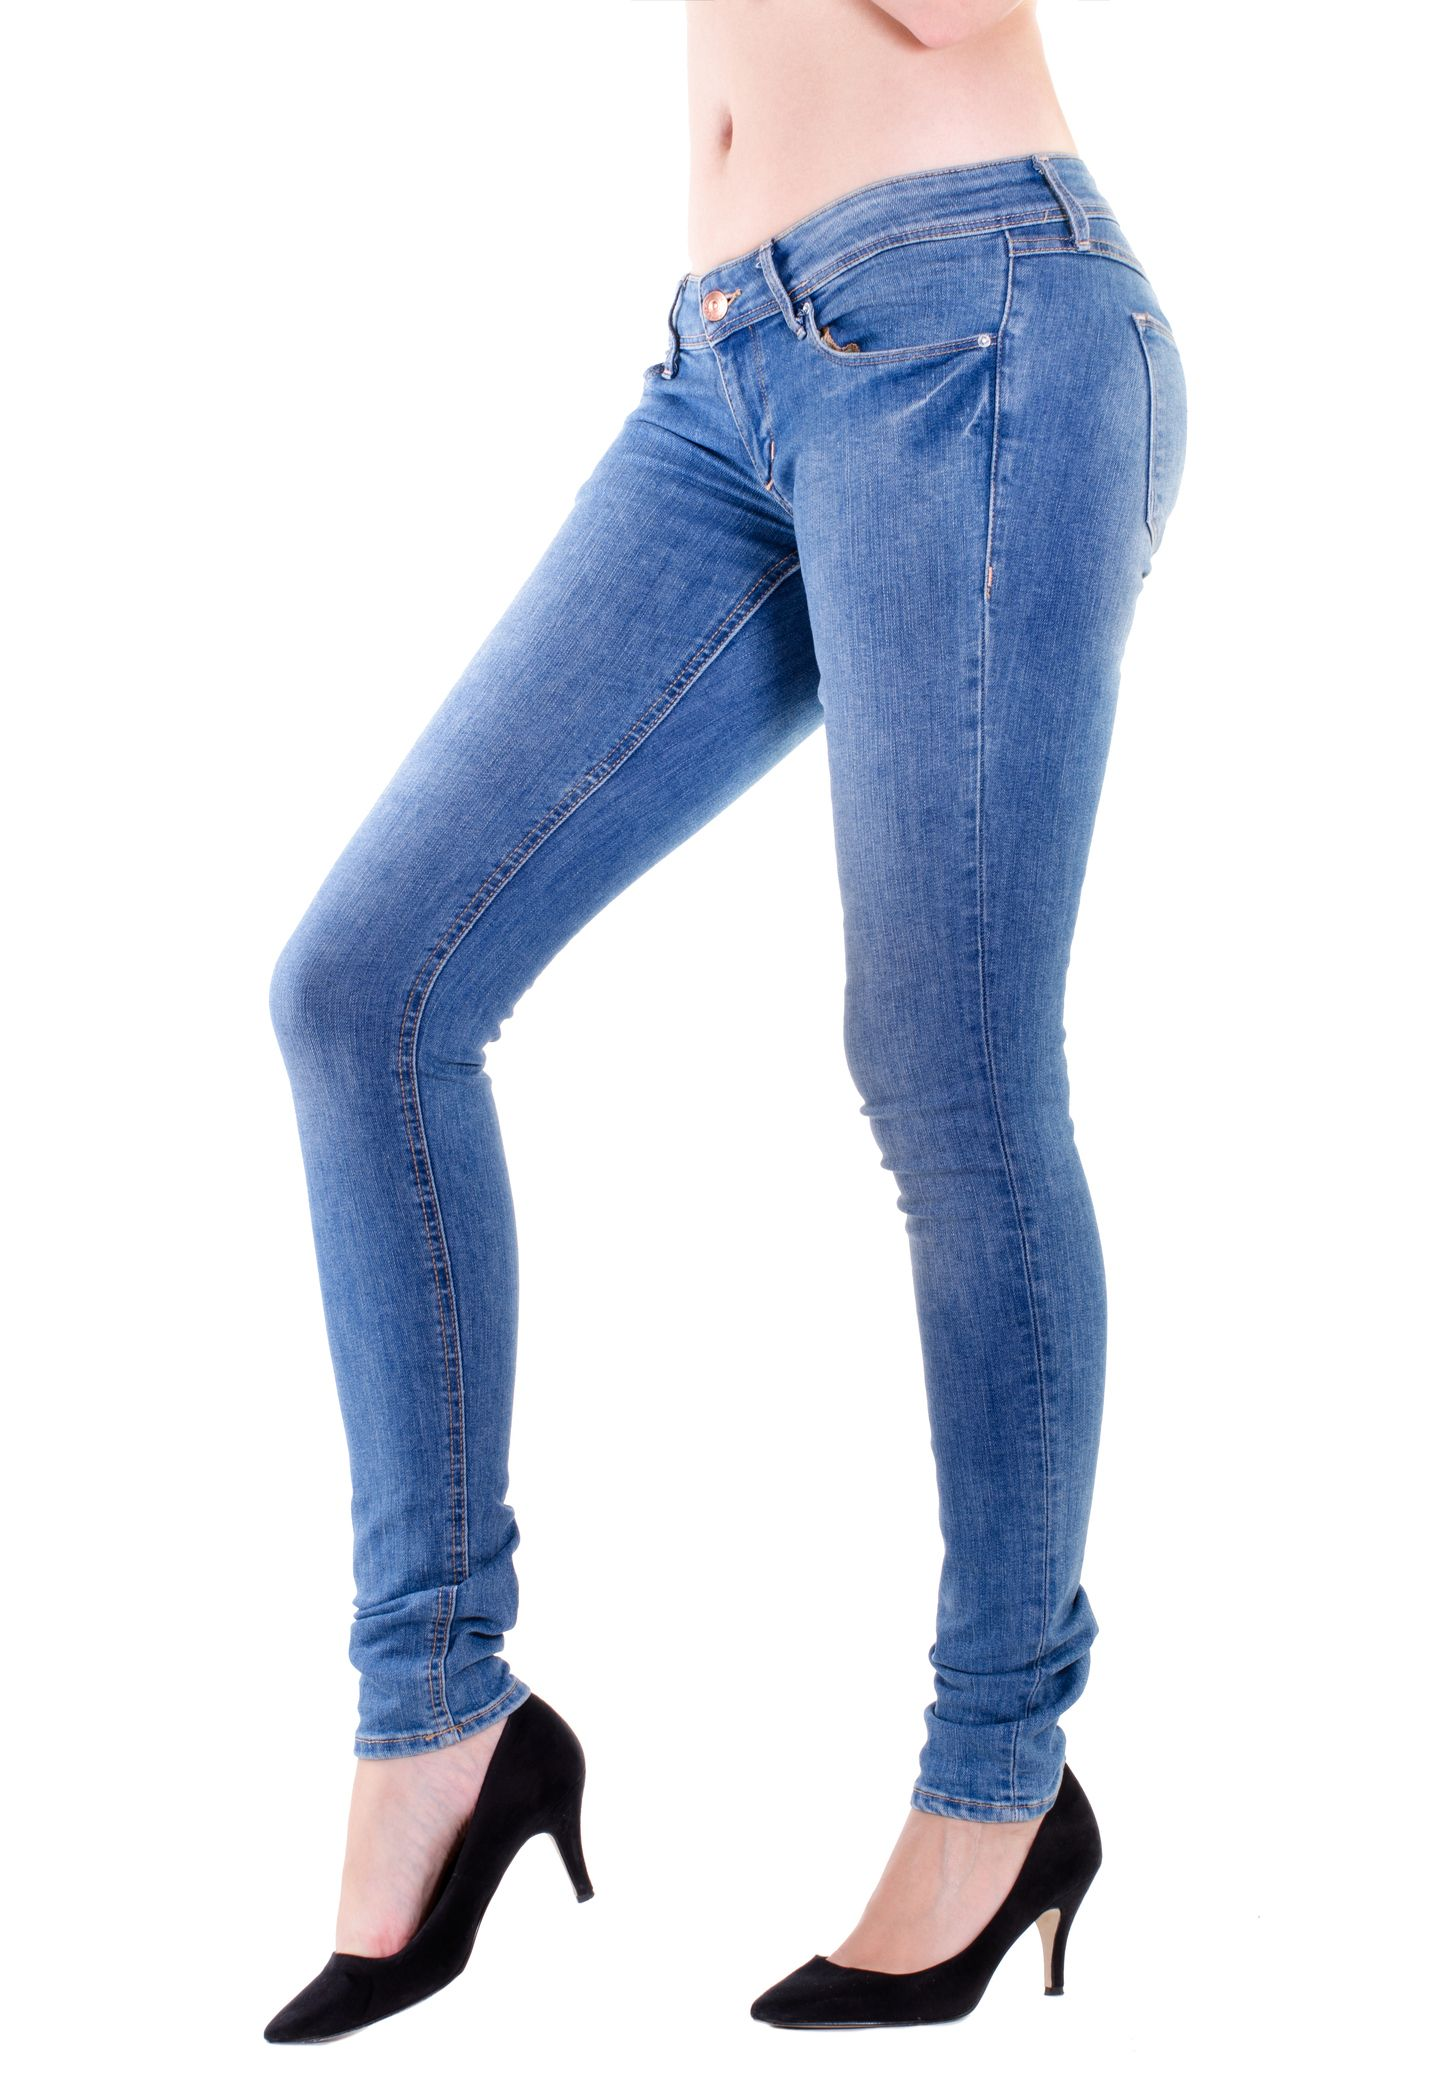 Woman legs in jeans with white background